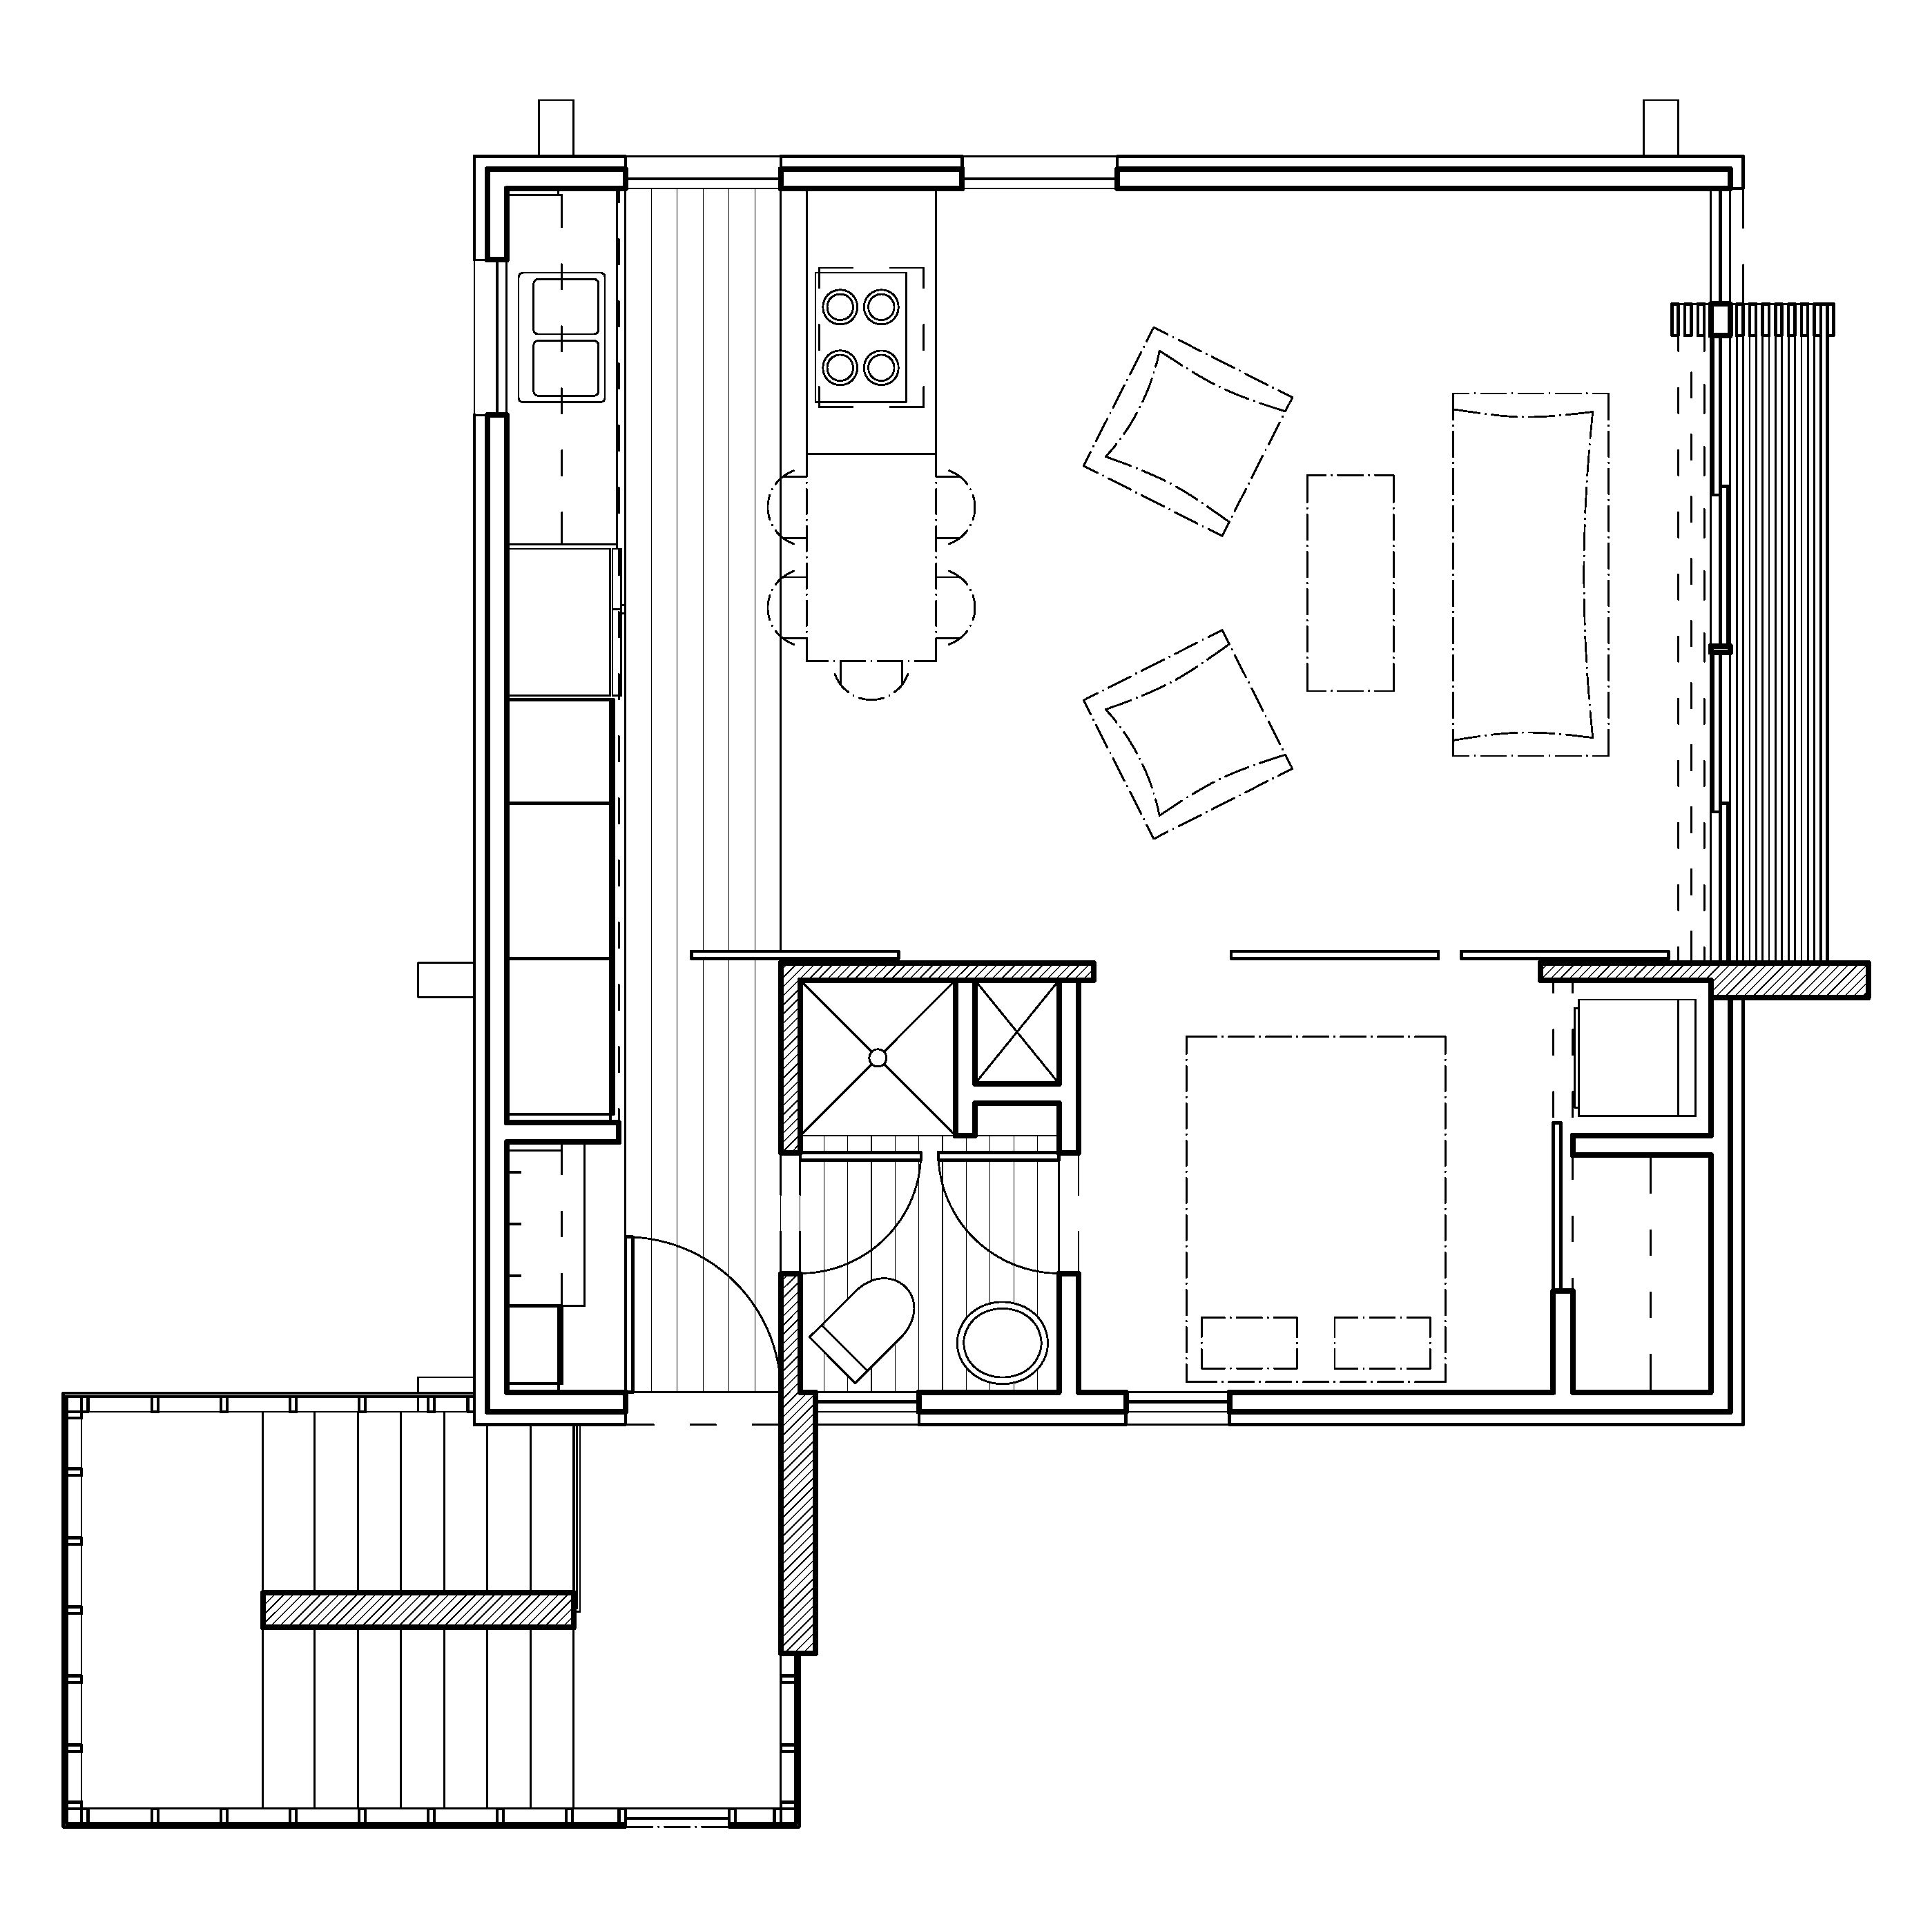 small house plans modern Google Search tiny house Pinterest